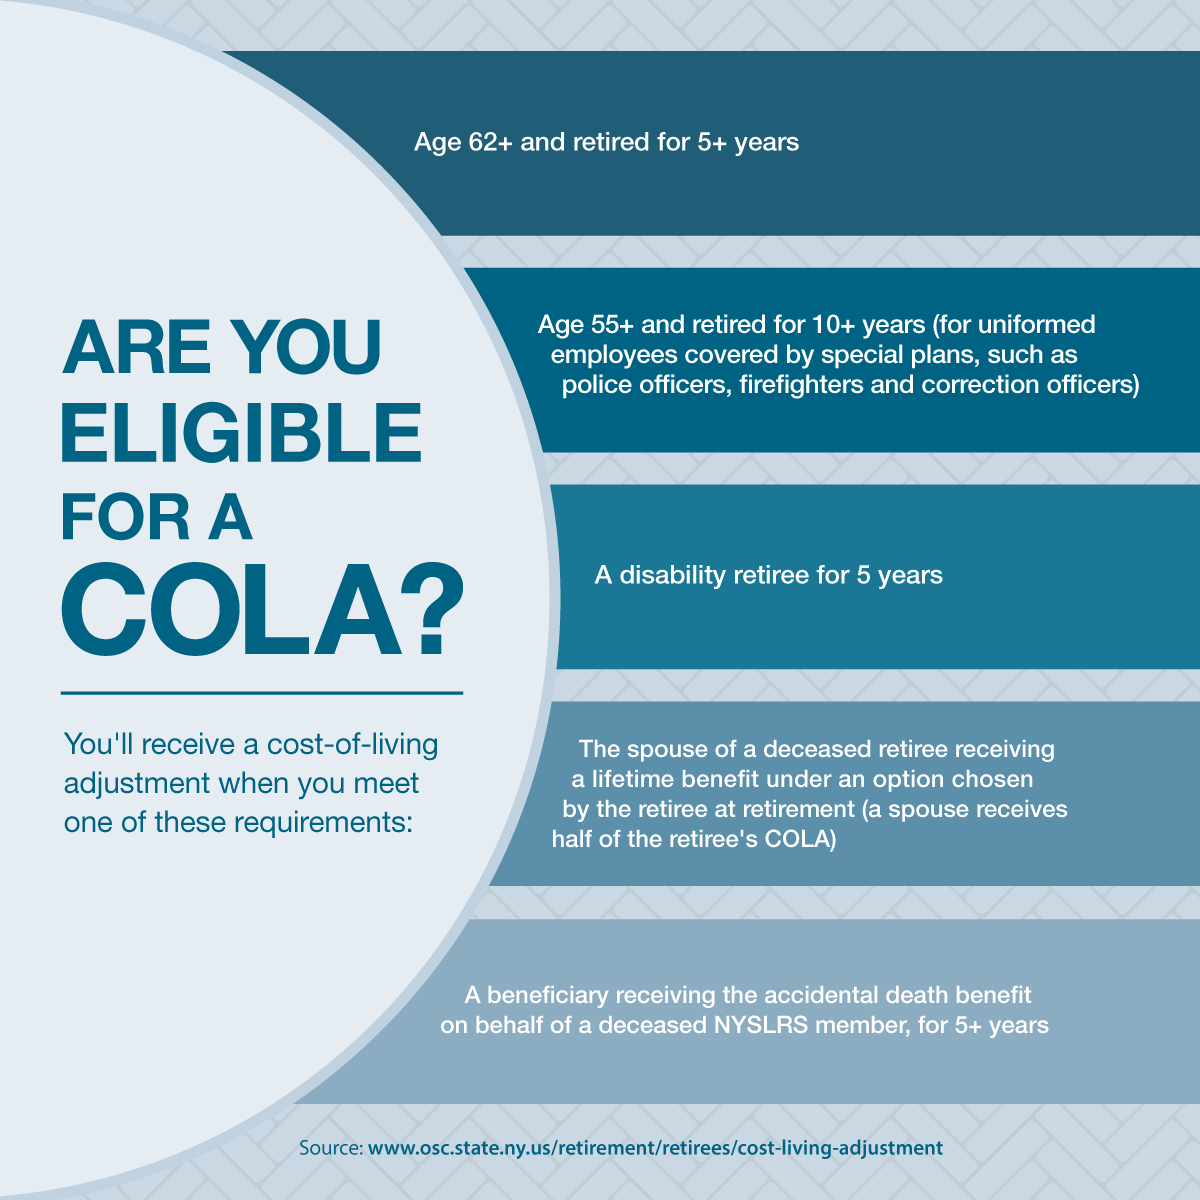 eligibility for cost-of-living adjustment (COLA)